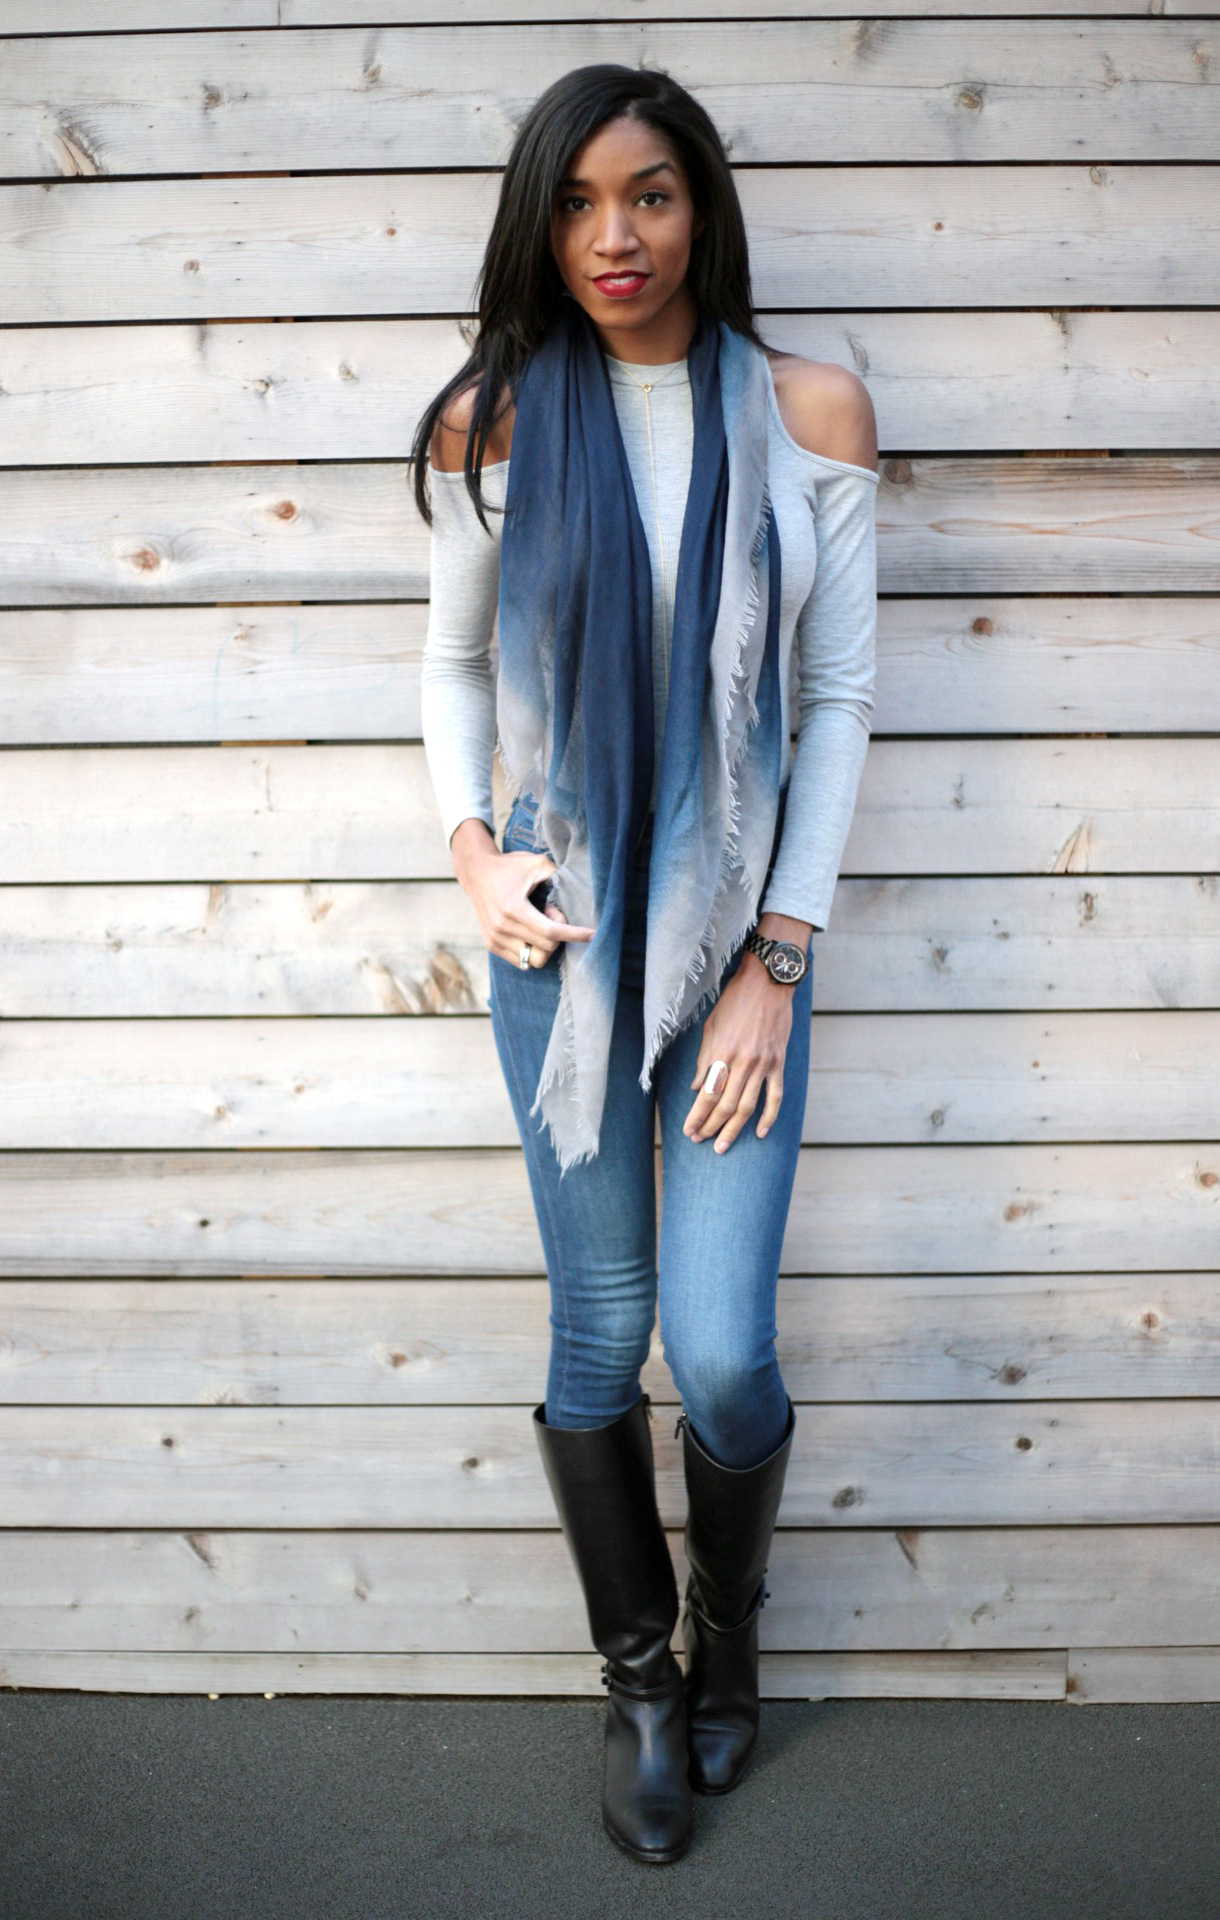 cold shoulder top, cold shoulder bodysuit, winter outfits, grey and navy outfits, winter style, coach boots, mom style